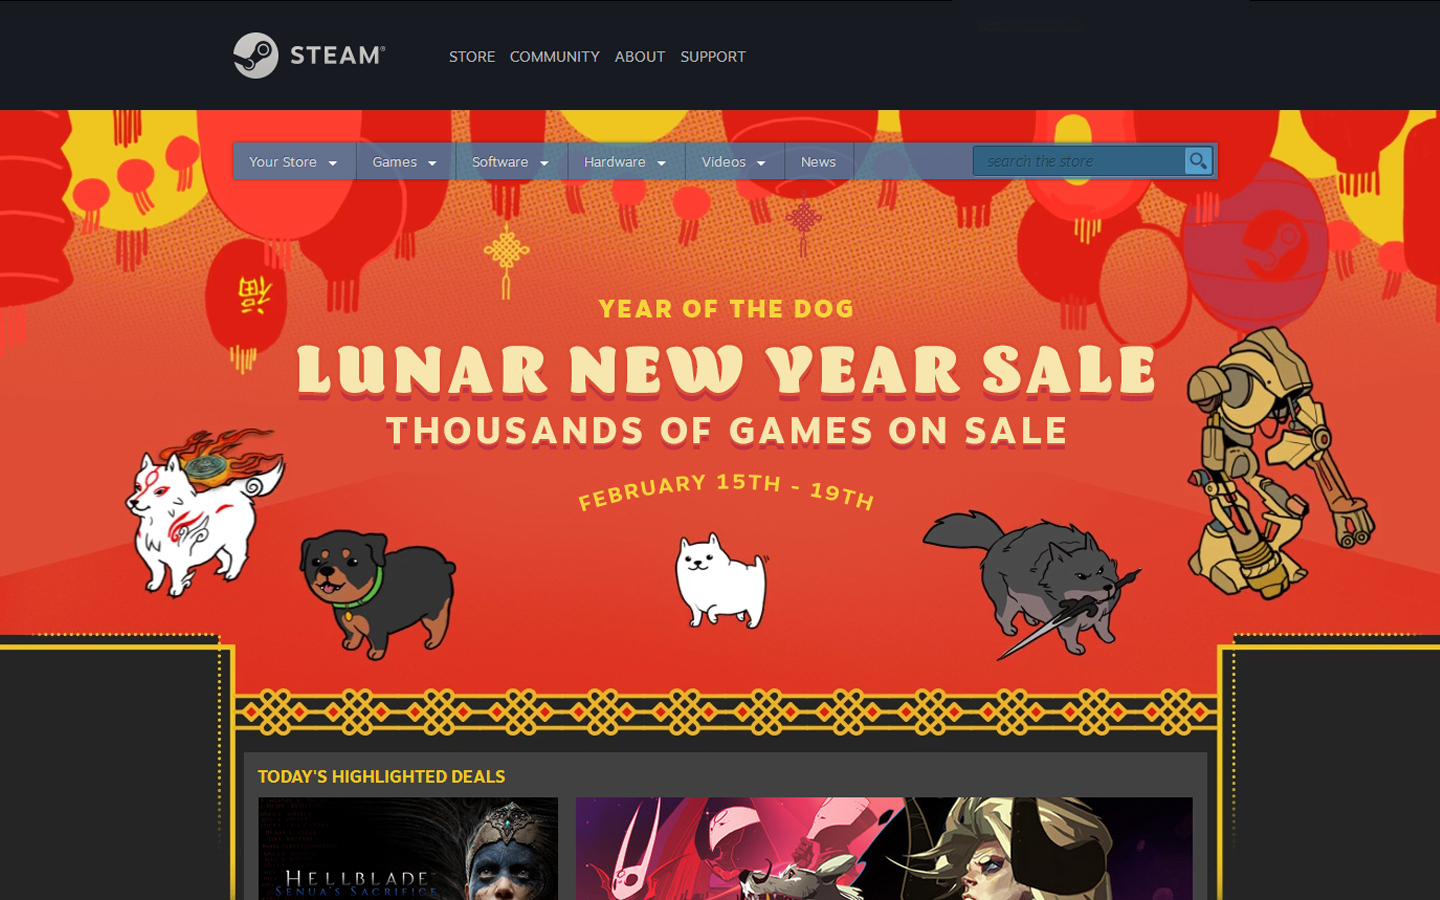 Saldos do Novo Ano Chinês no Steam